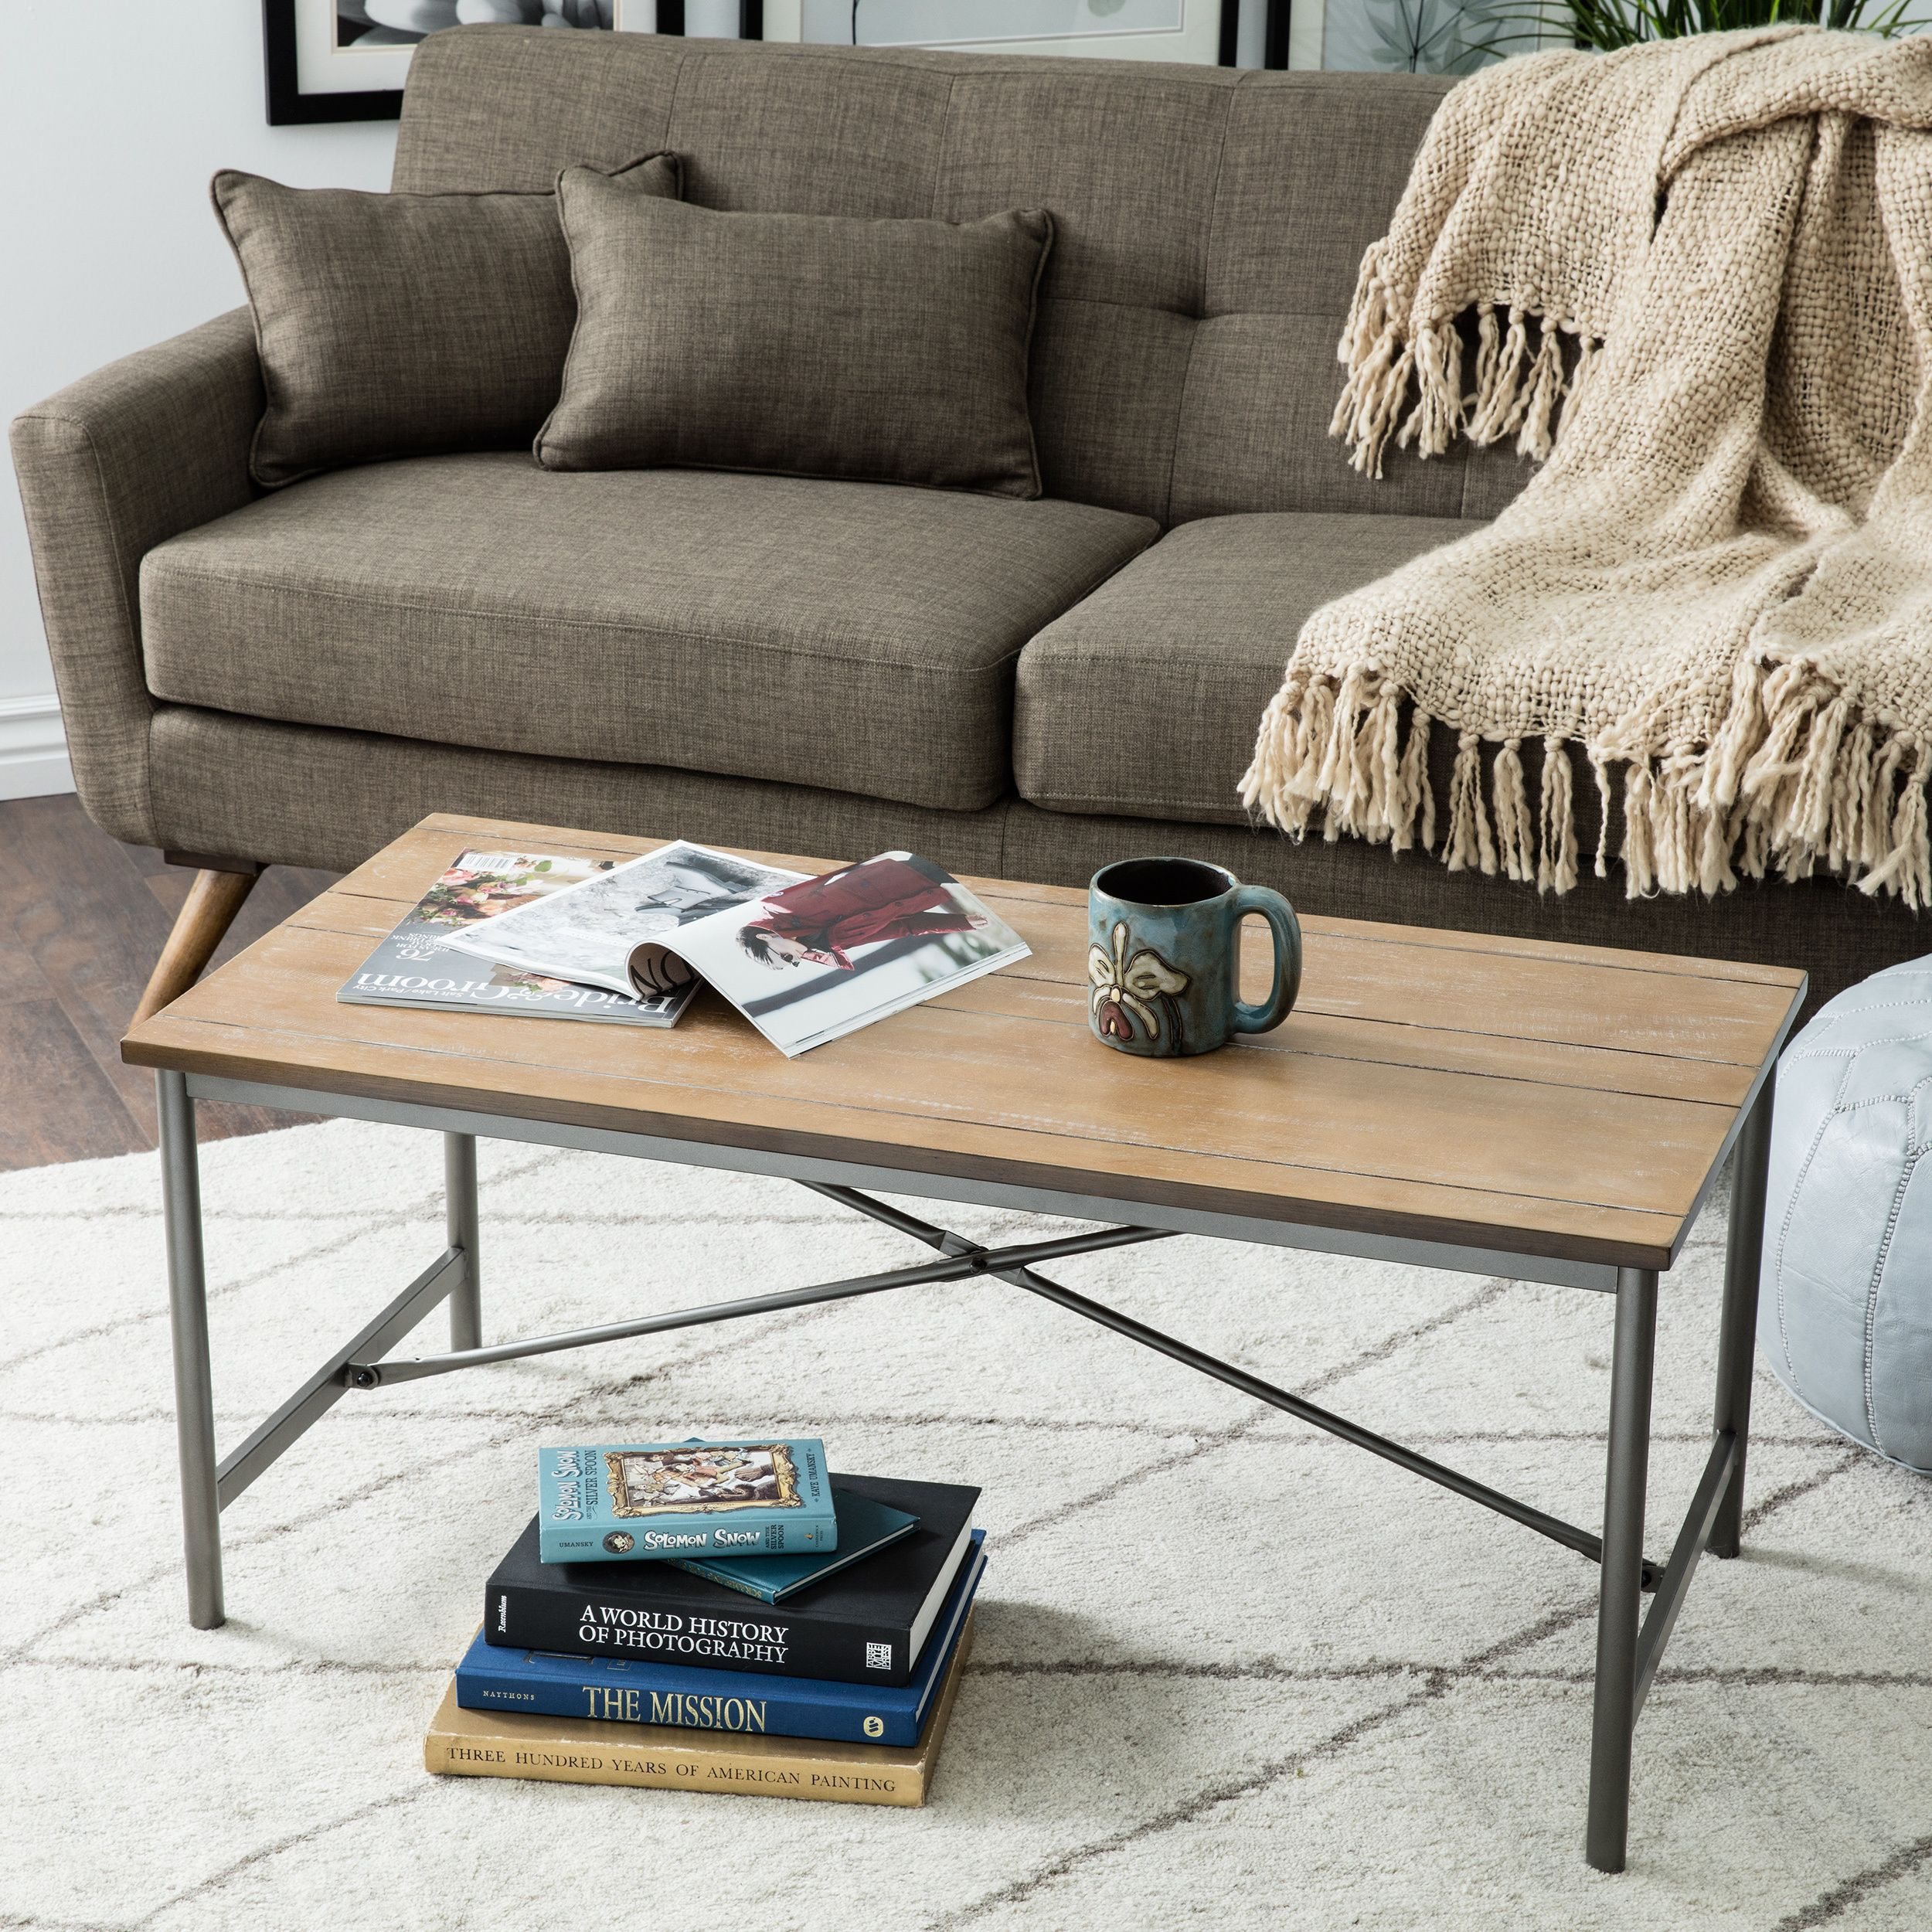 Add This Rustic Grey Coffee Table To Your Living Room, And Make Room For  Entertaining And Relaxing. The Reclaimed Wood Surface Is Naturally  Distressed, ...